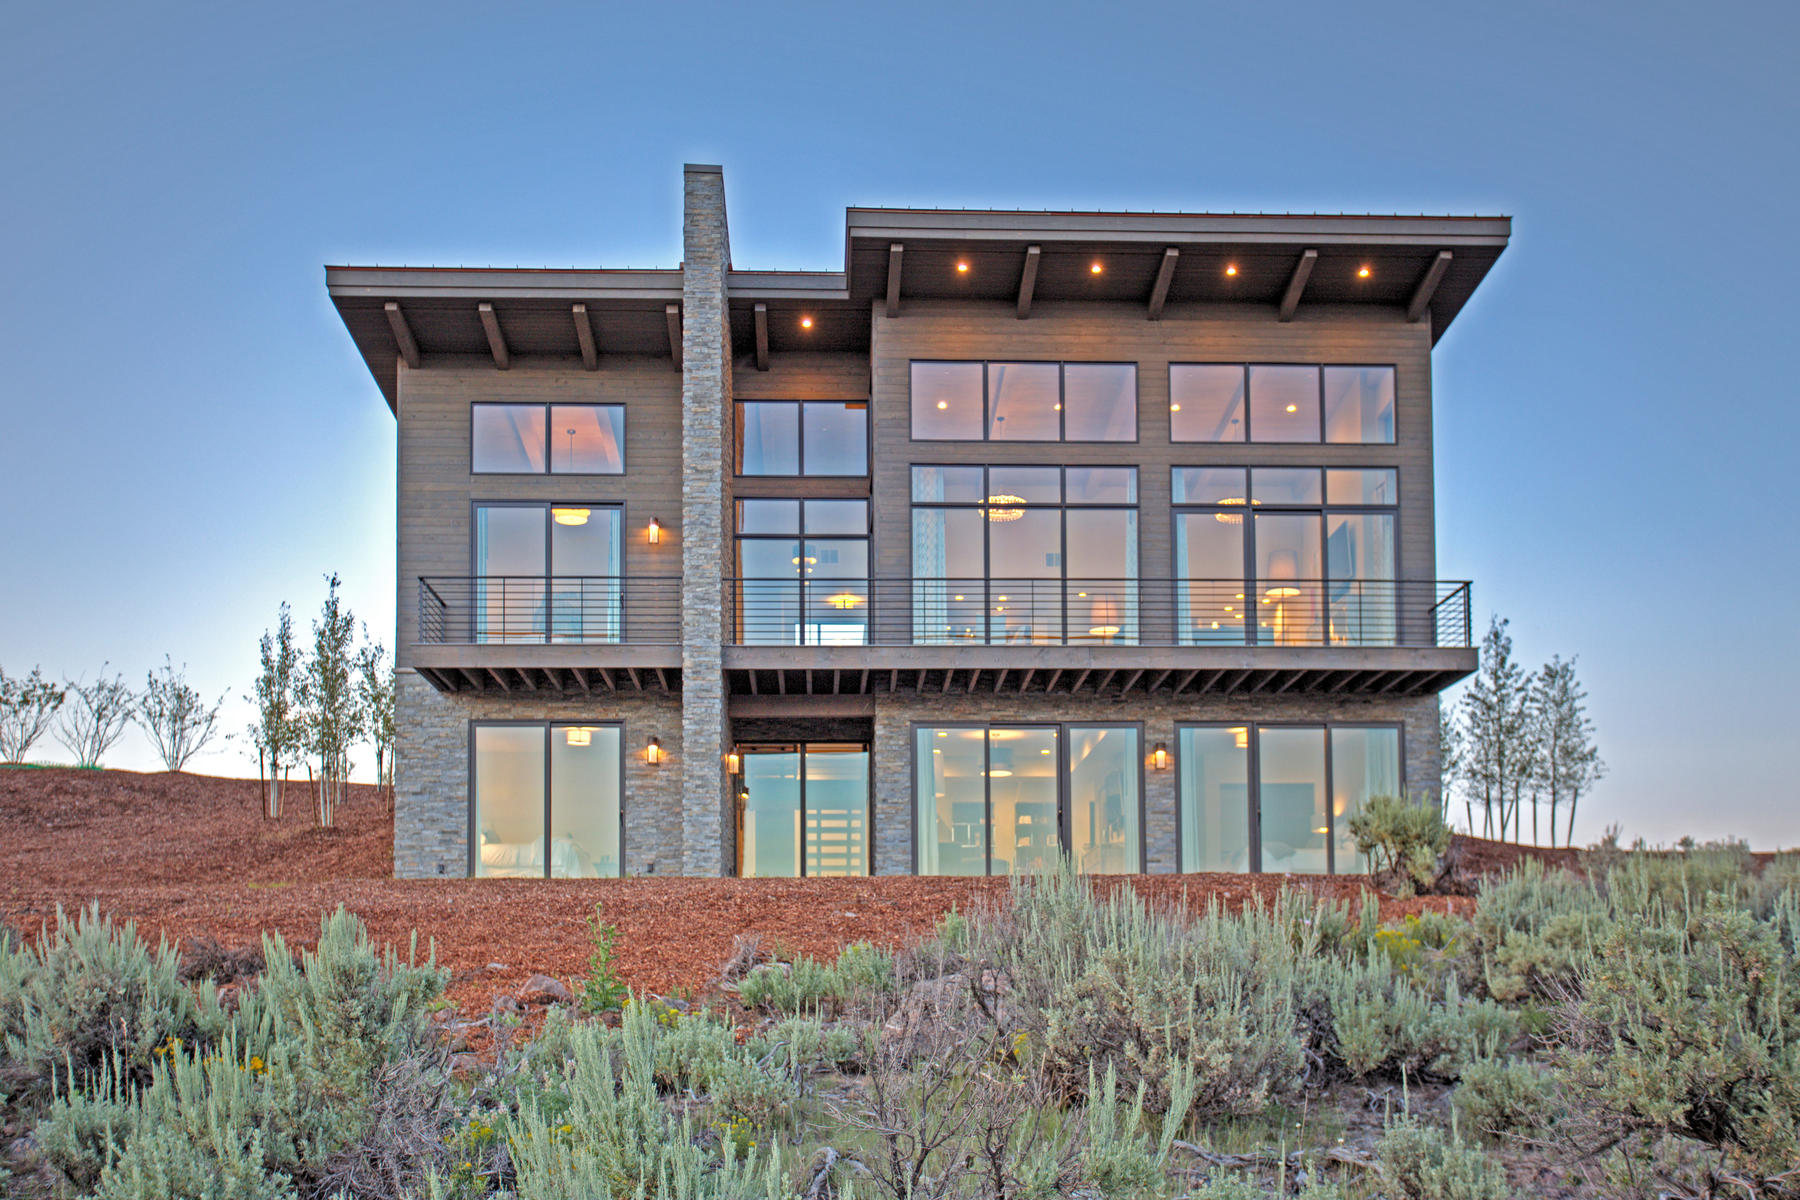 Single Family Home for Sale at Modern Luxury In Your Mountain Escape 6633 Golden Bear Loop West, Park City, Utah, 84098 United States